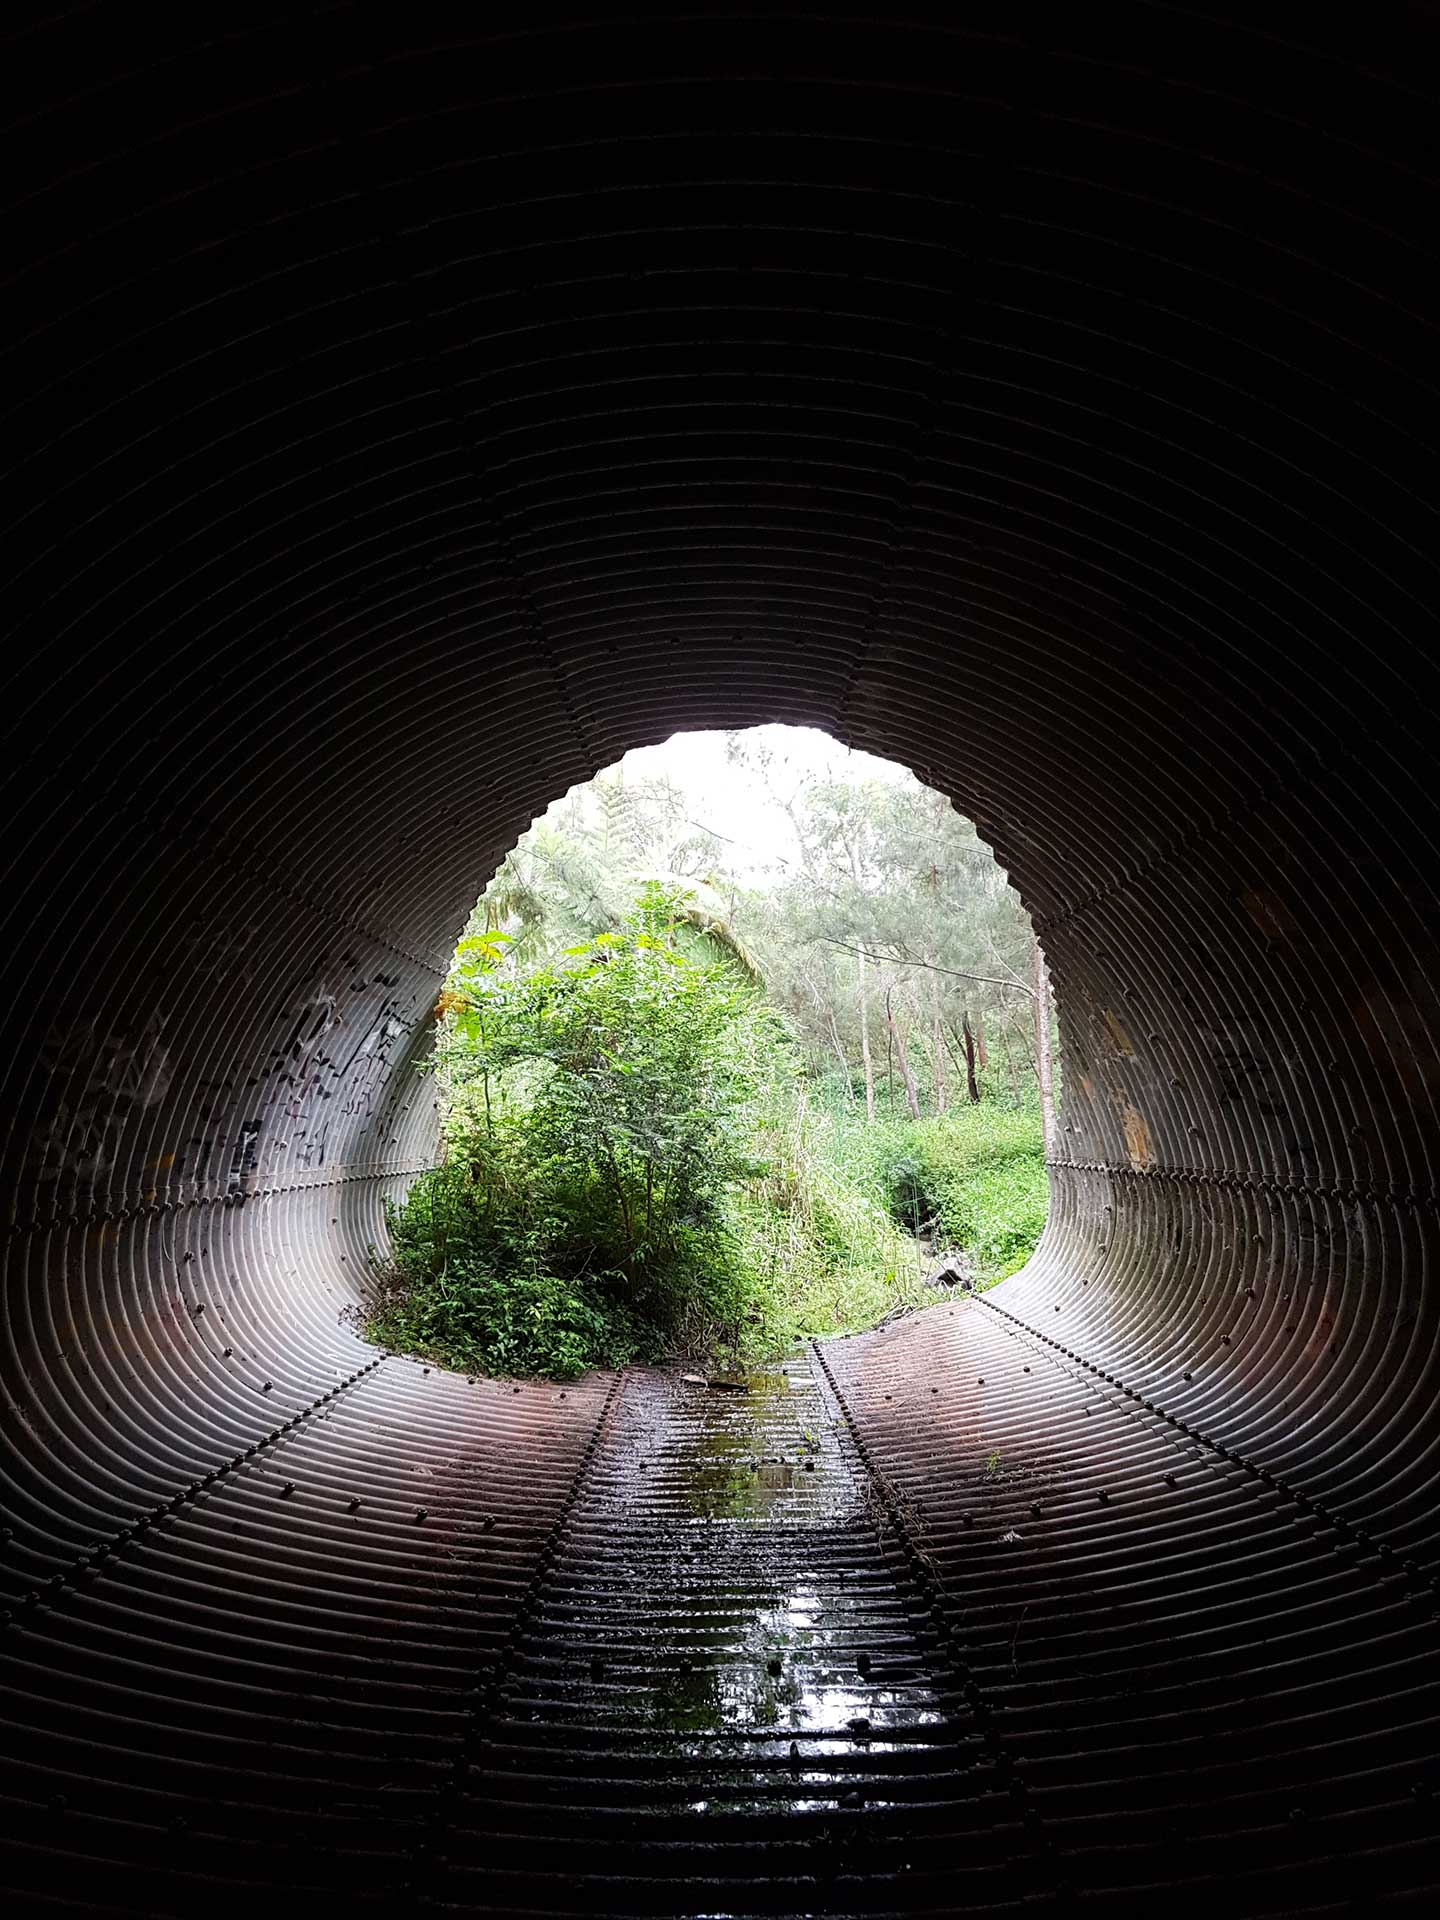 First Place - Laura Payne (Title: Forest Tunnel)